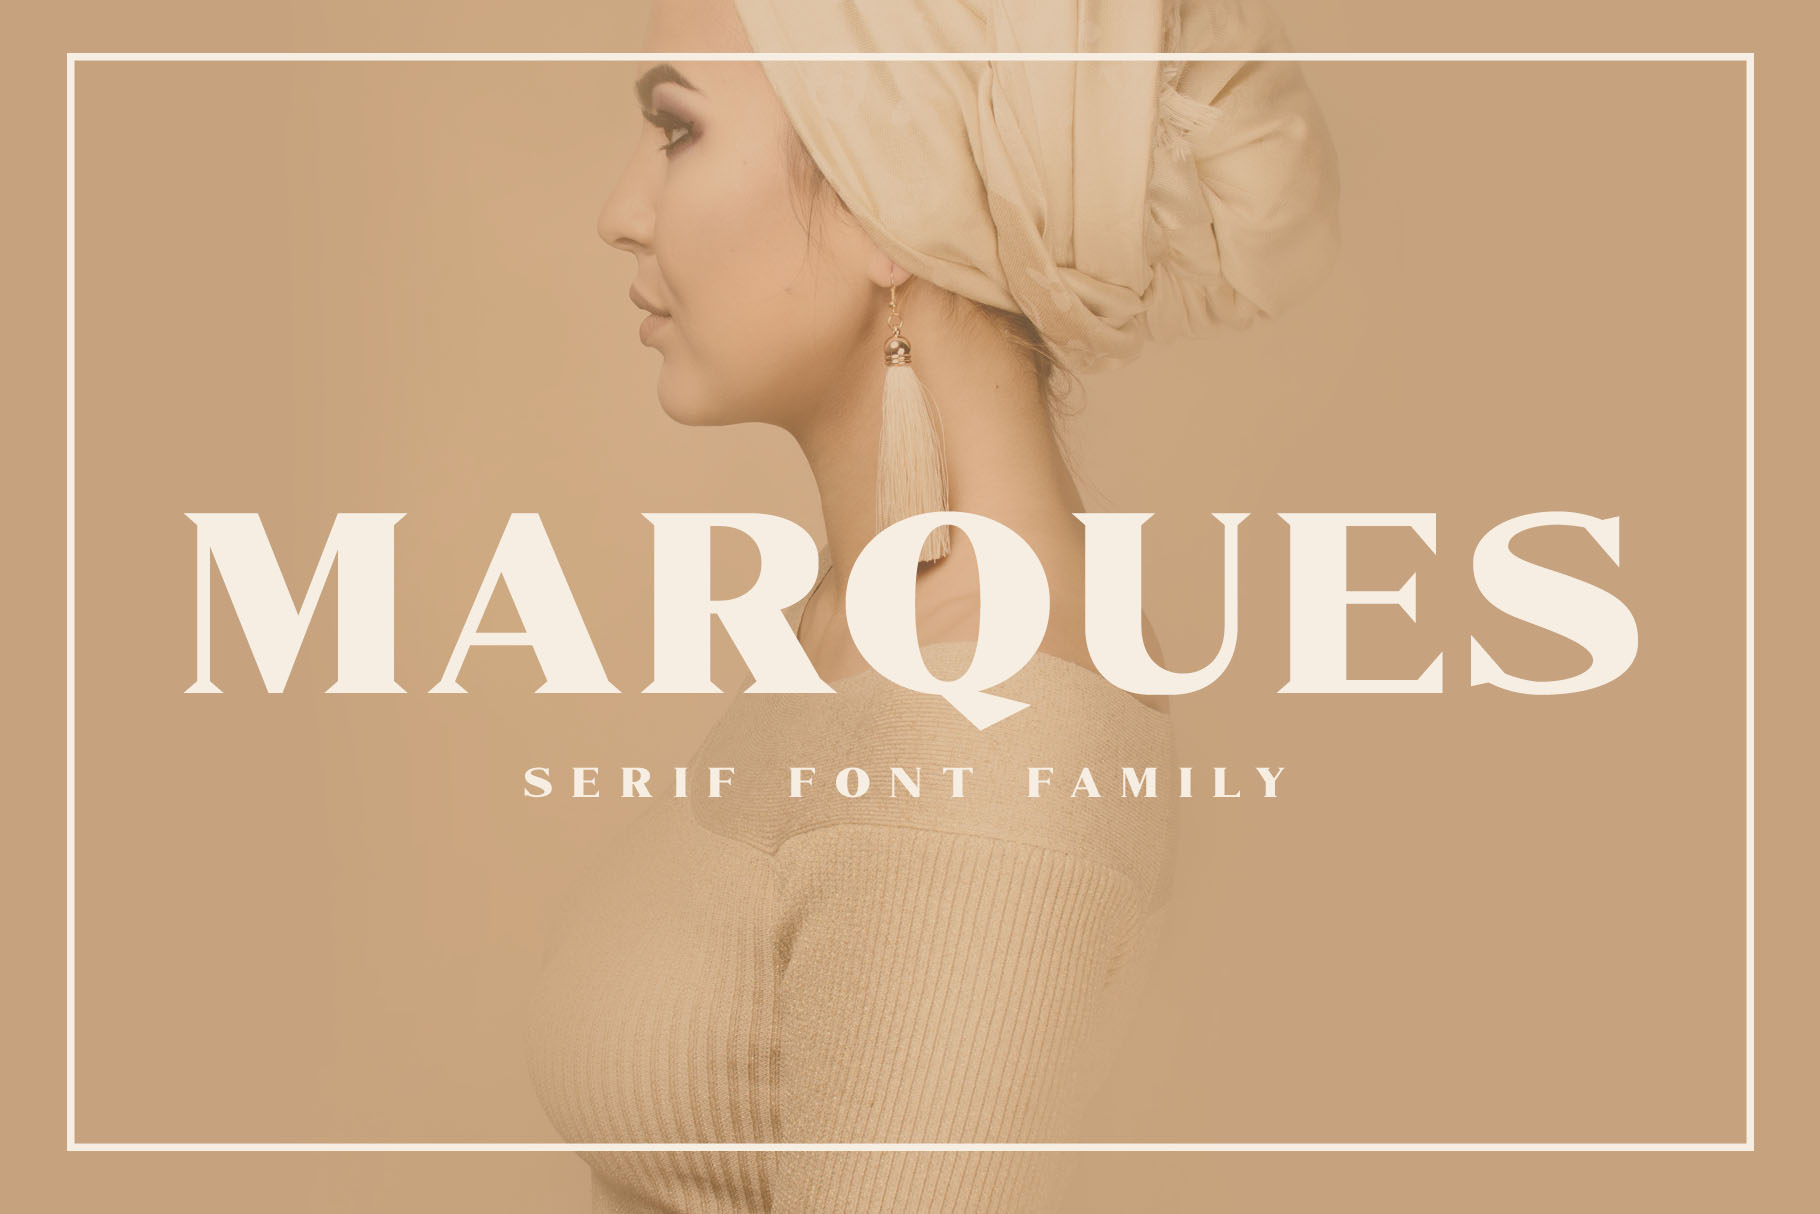 Marques - Modern Serif Font Family example image 1